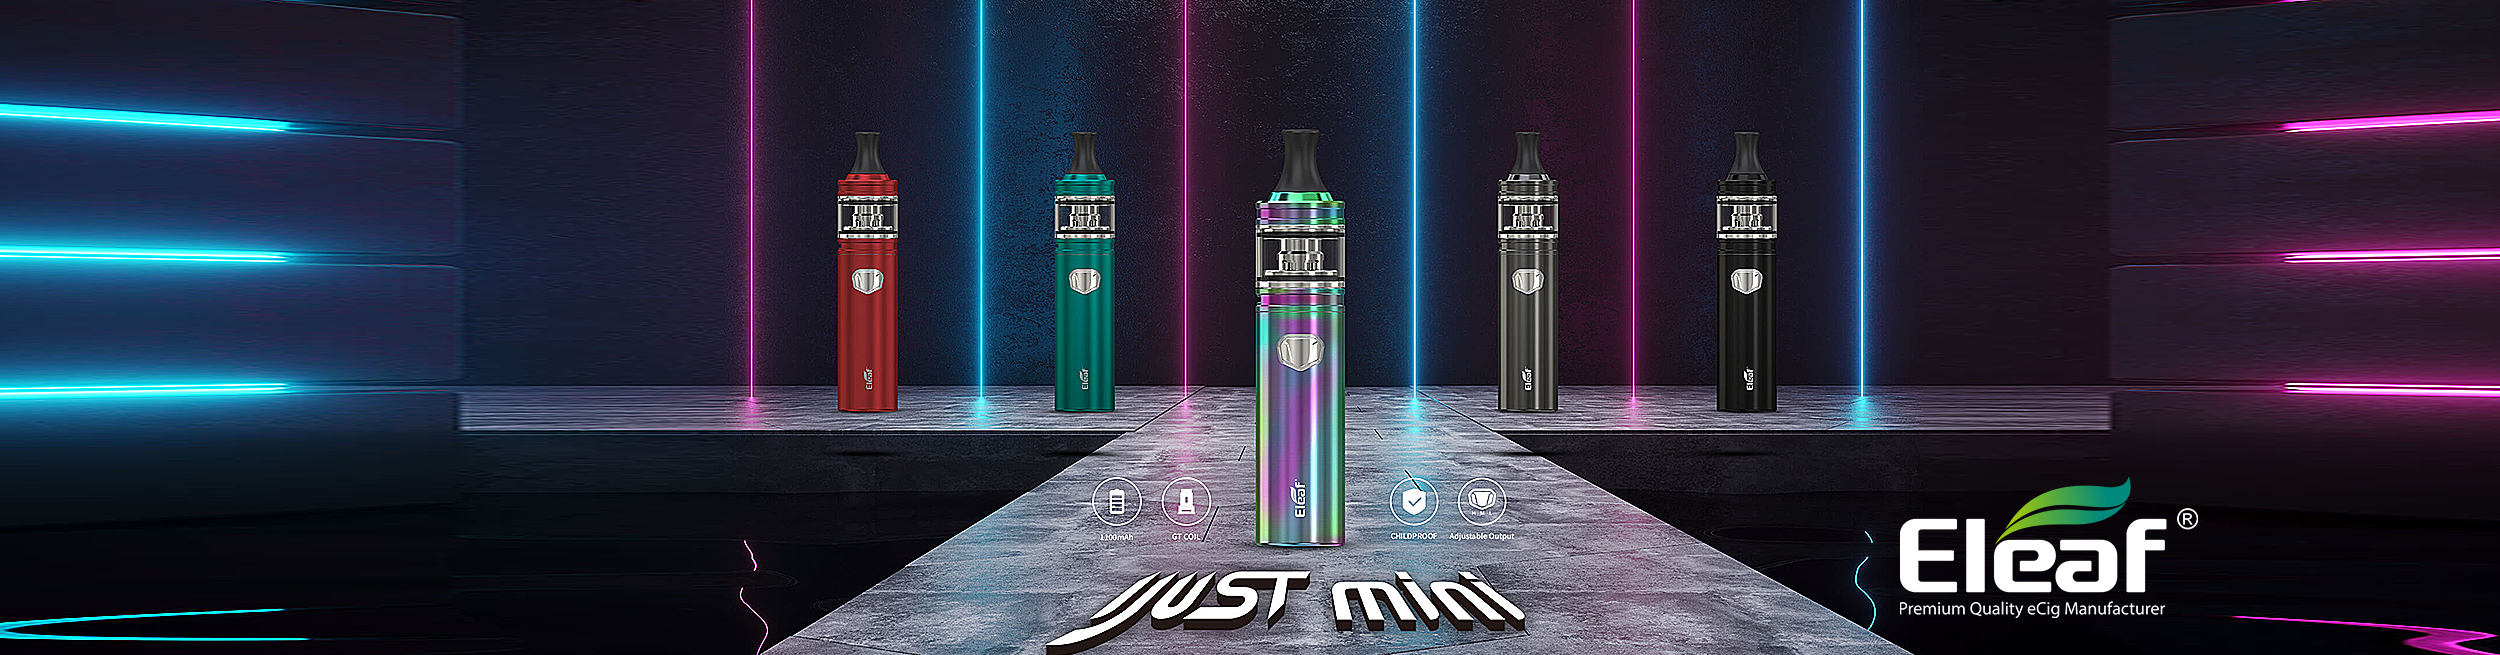 iJust mini e-cigarette